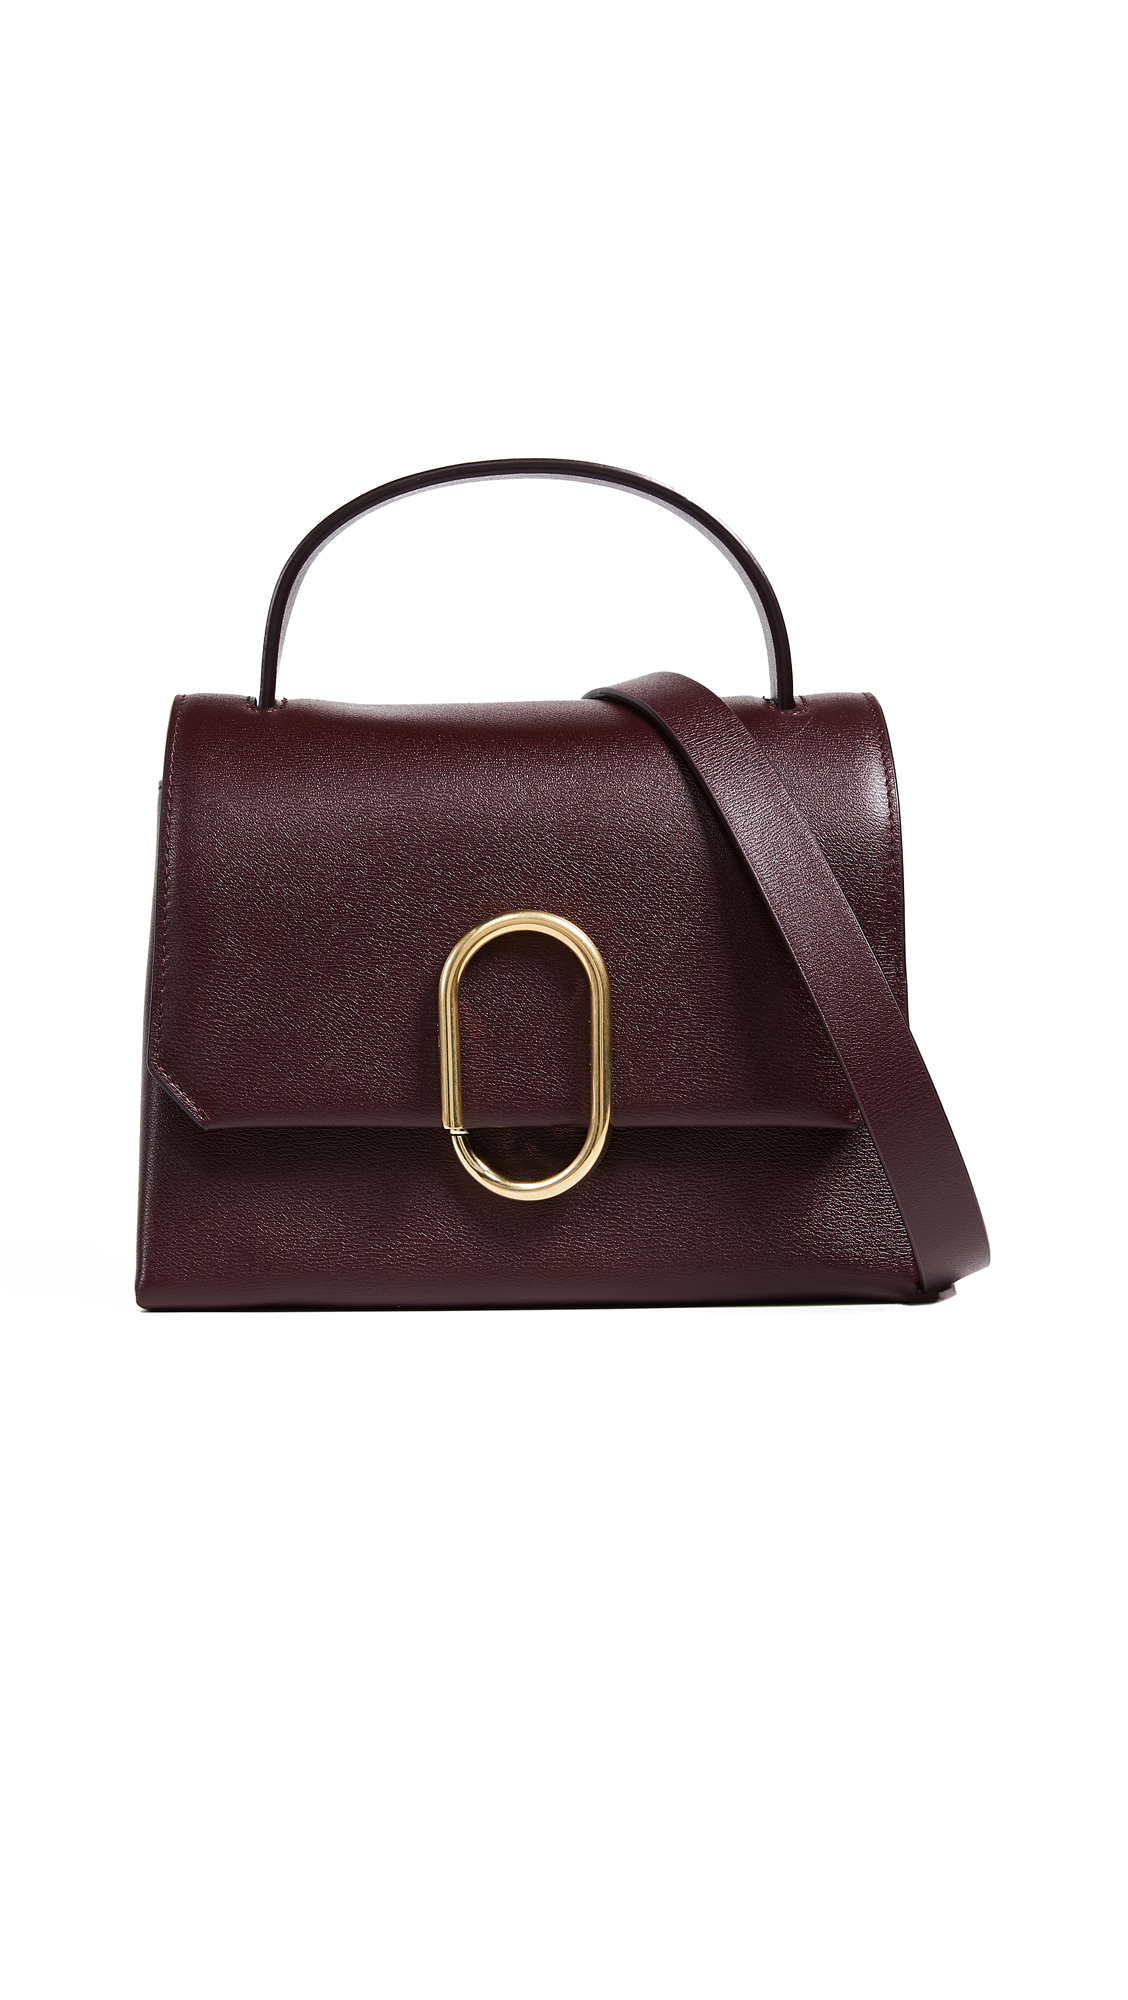 3.1 Phillip Lim Alex Mini Top Handle Satchel - Bordeaux